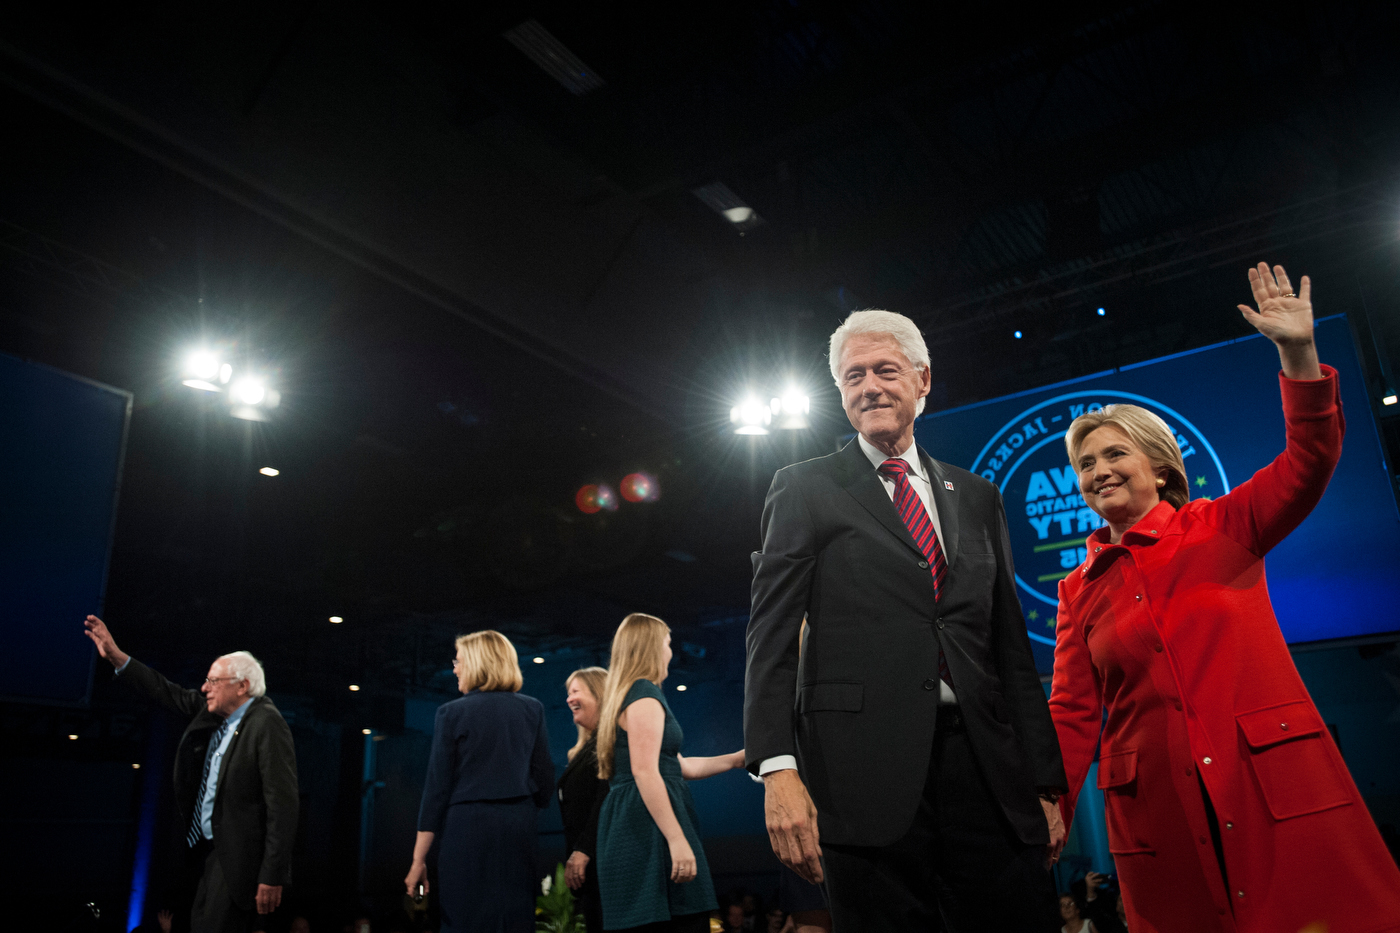 President Bill Clinton and Hillary Clinton, right, greet the crowd and media as Bernie Sanders, left, waves towards his supporters at the end of 2015 Iowa Jefferson-Jackson Dinner in Des Moines.